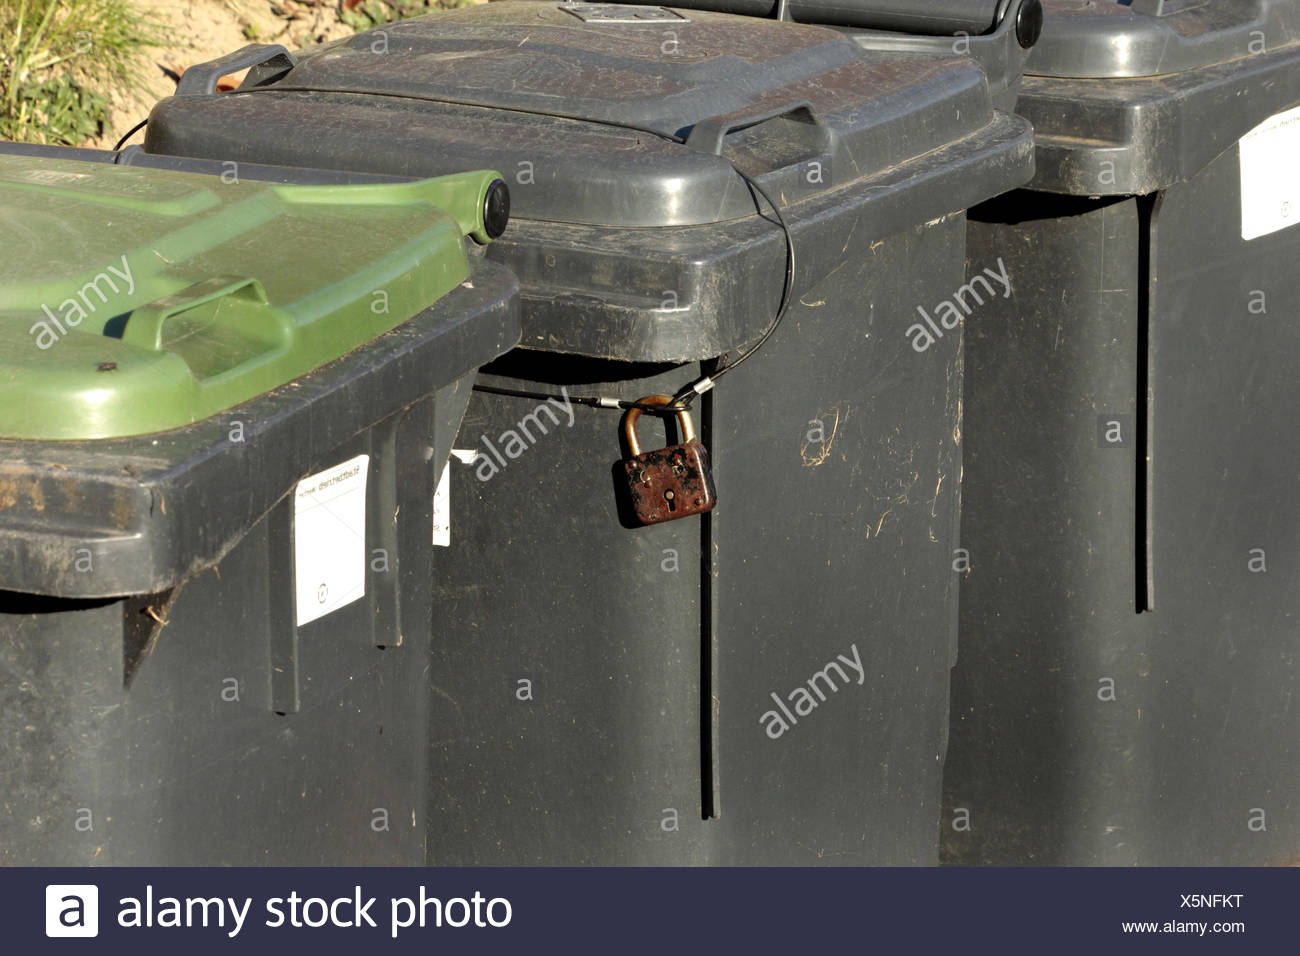 garbage can closed with a lock, Germany, North Rhine-Westphalia - Stock Image